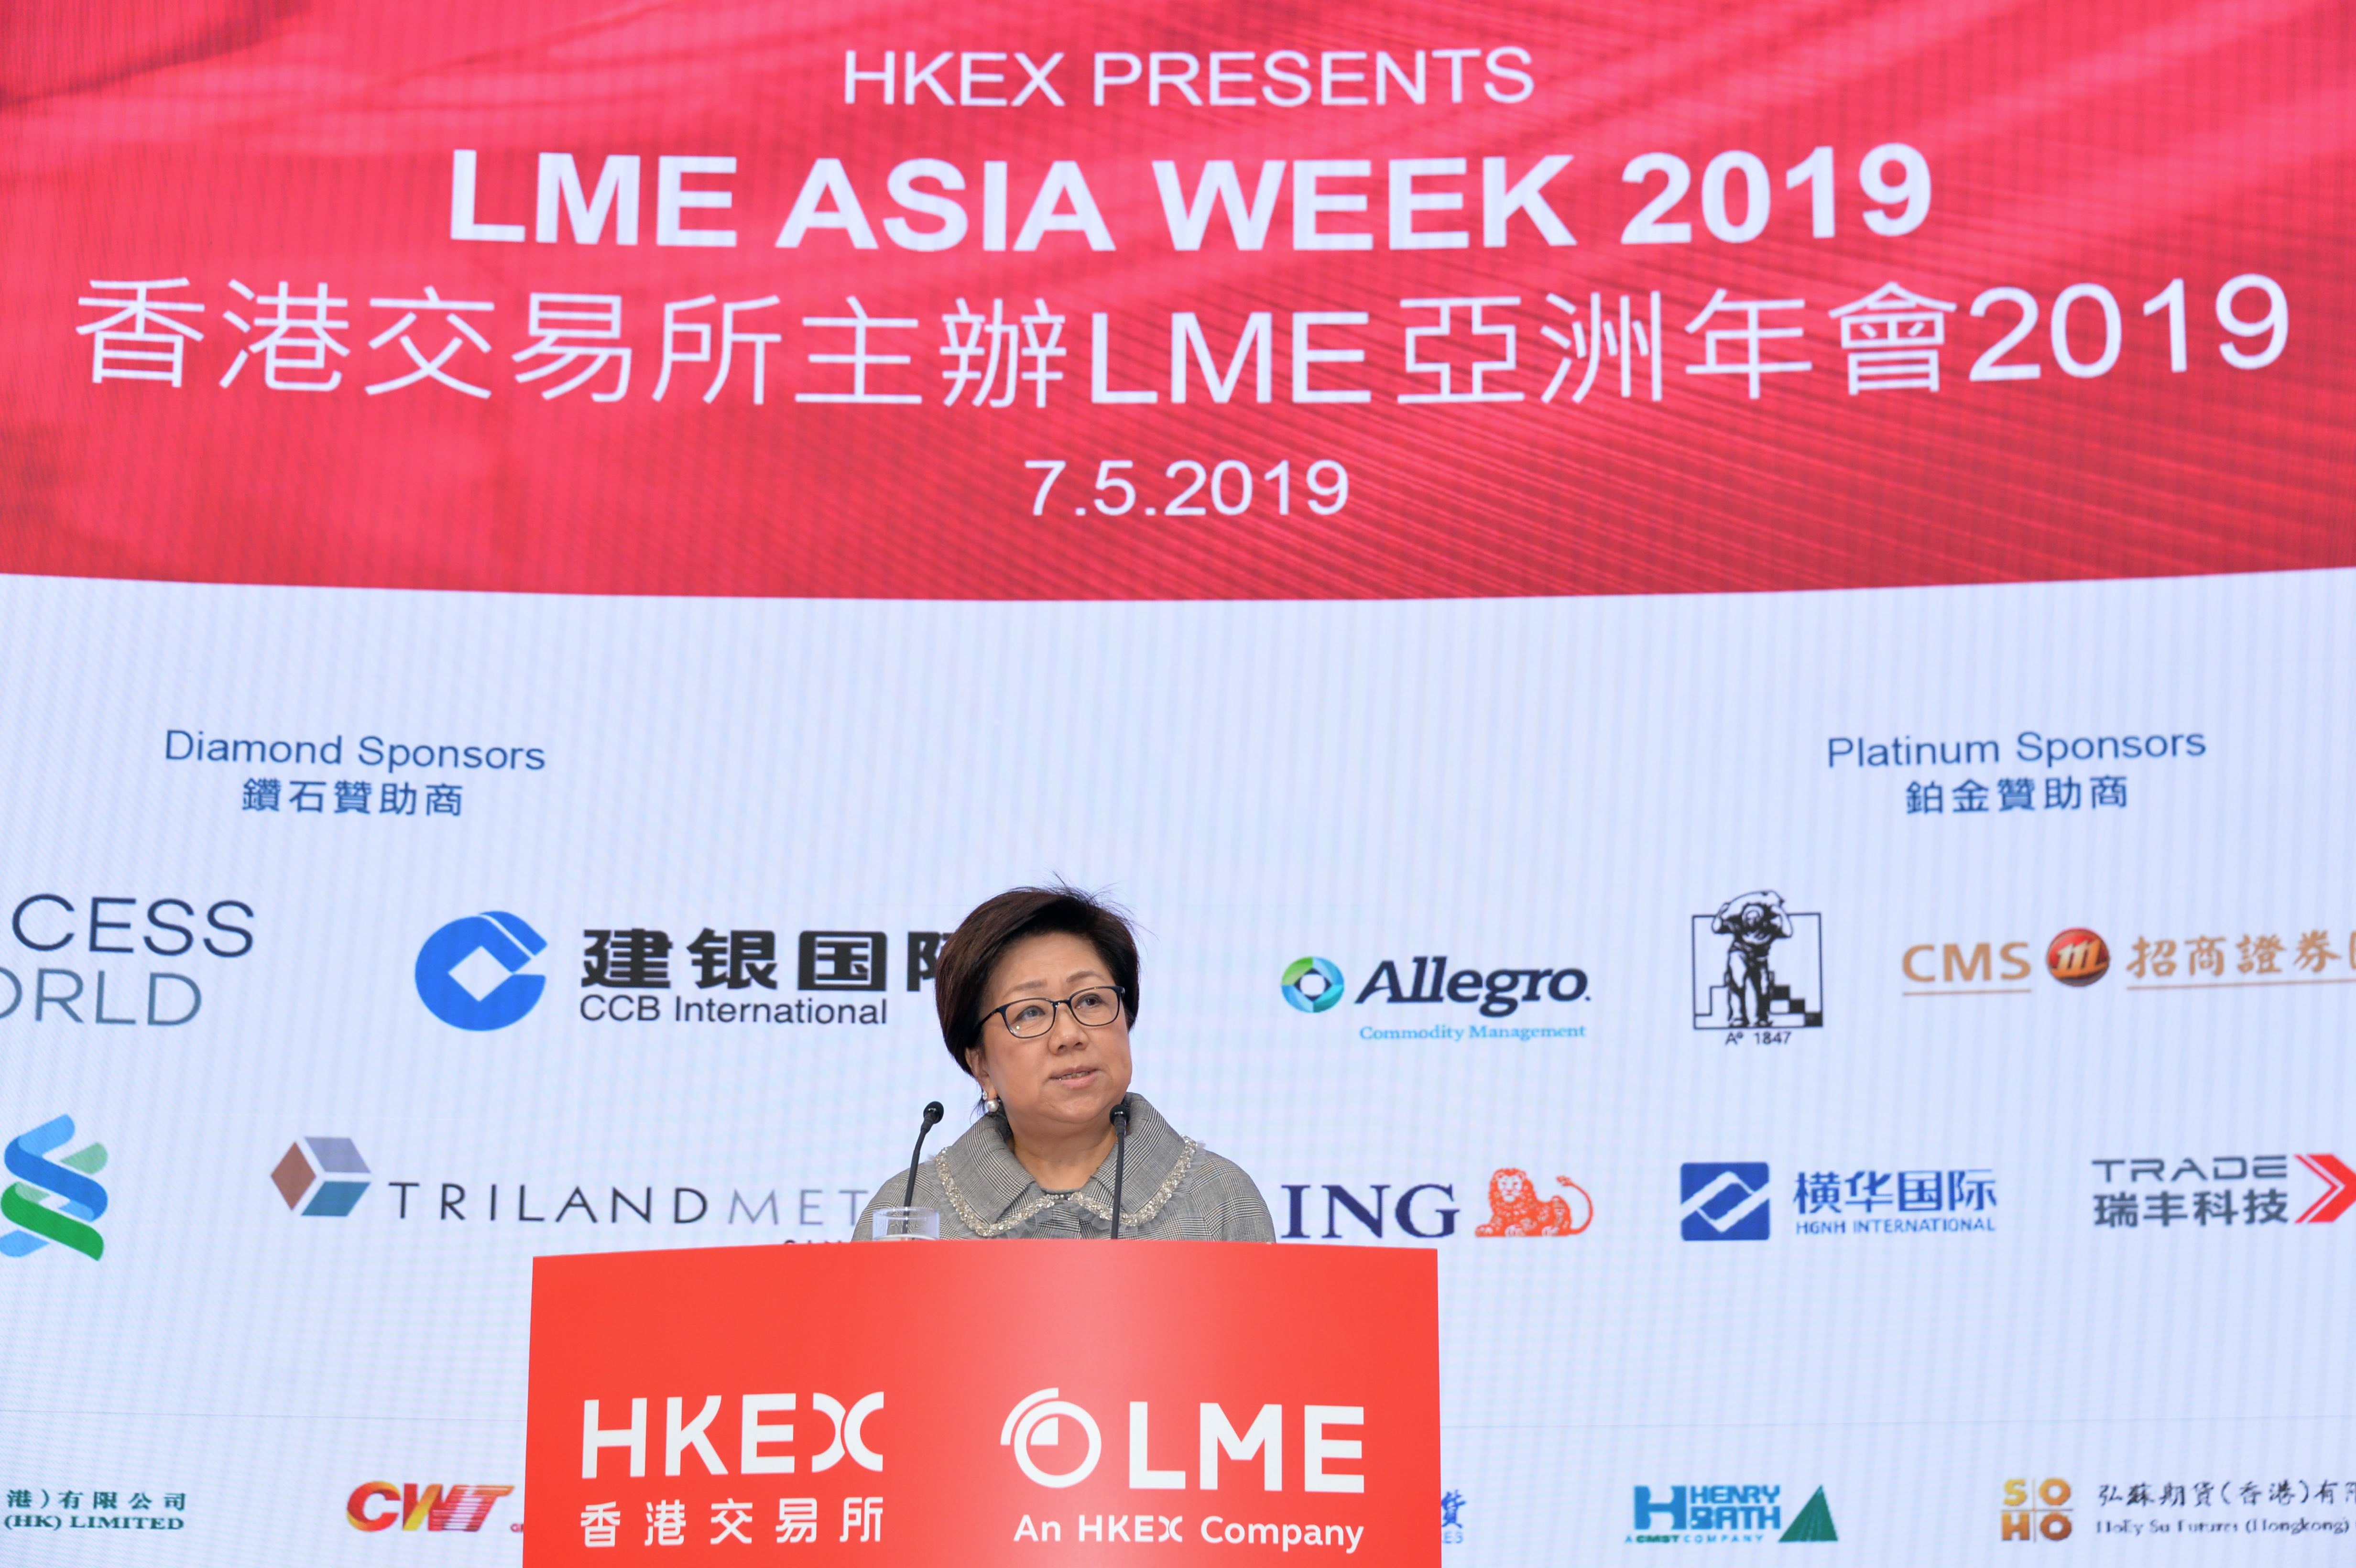 HKEX Chairman Laura M Cha welcomes guests from around the world to the LME Asia Week 2019